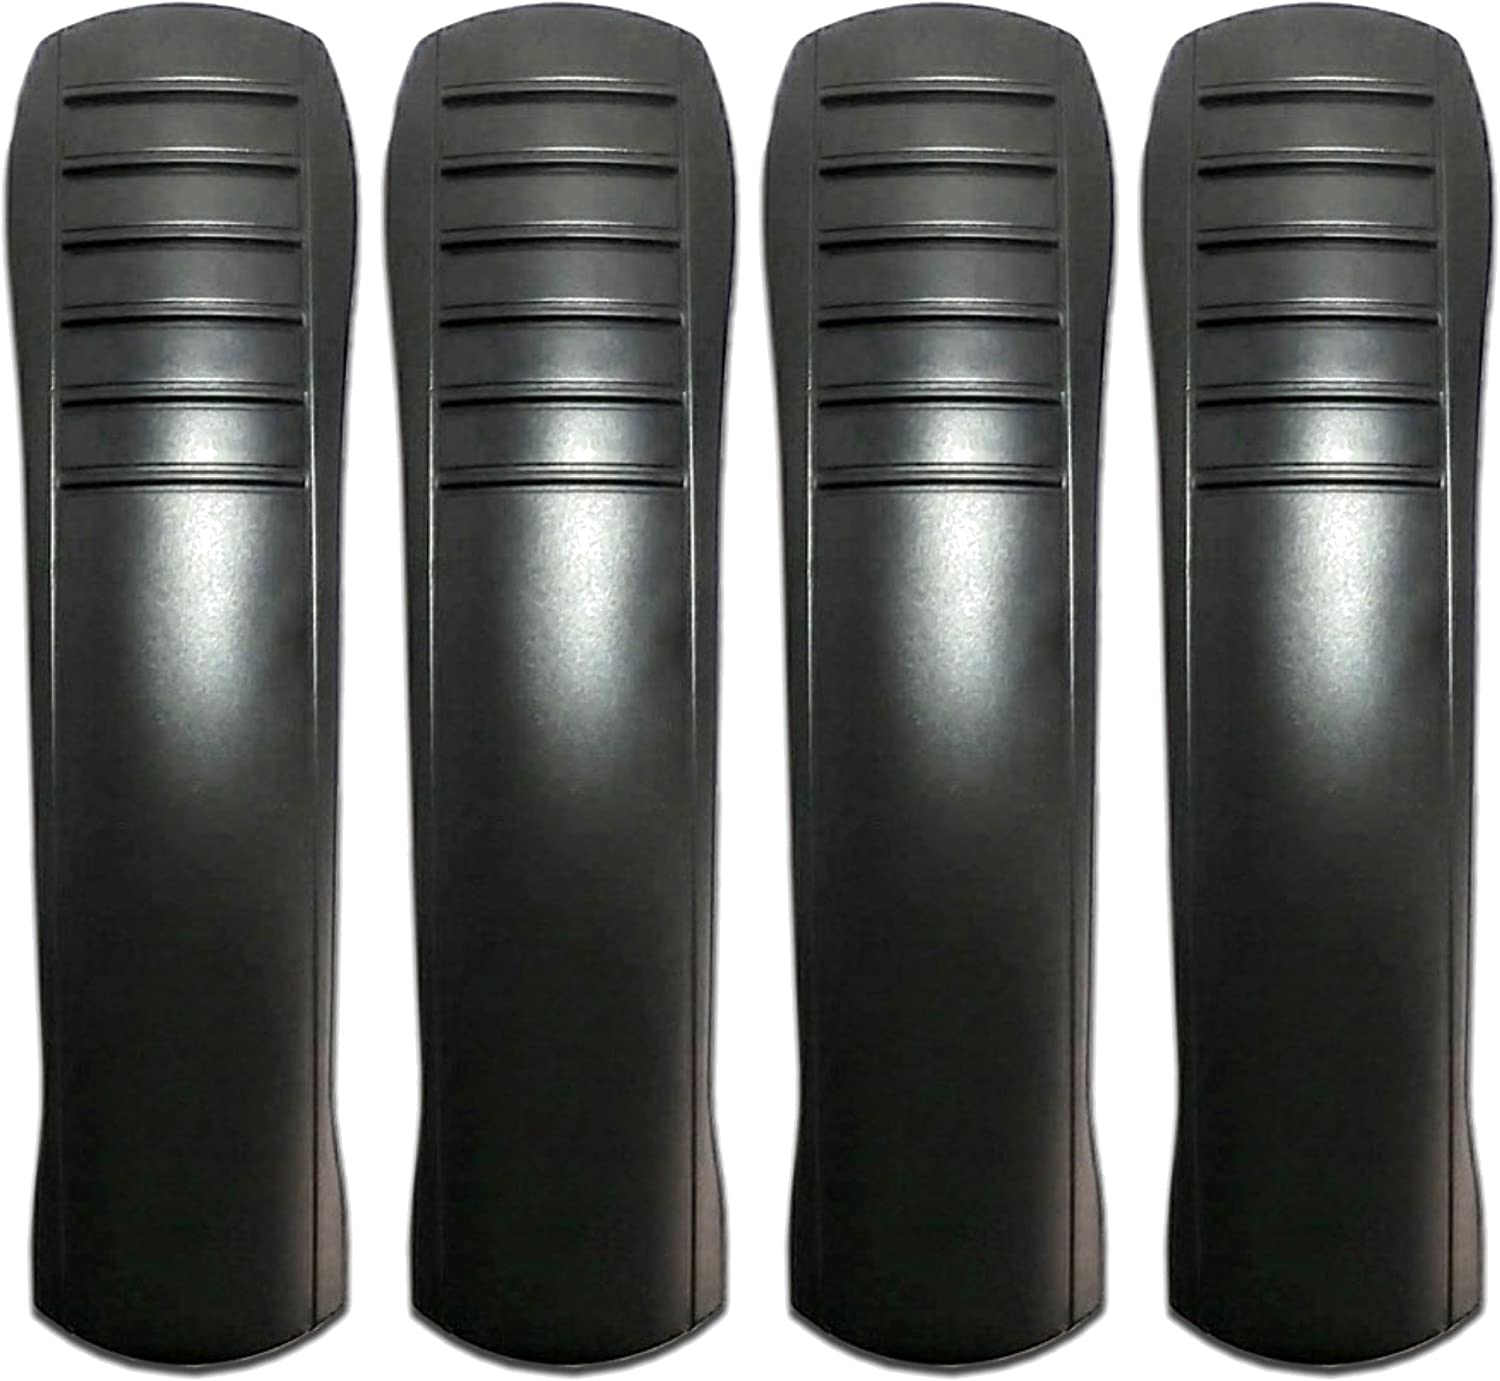 Mitel 5300 Compatible Handset (4 Pack) Fits 5304, 5312, 5320, 5320e, 5324, 5330, 5330e, 5340, 5340e, and 5360. Also Fits 5207, 5215, 5220, and 5235 81airmROJsL